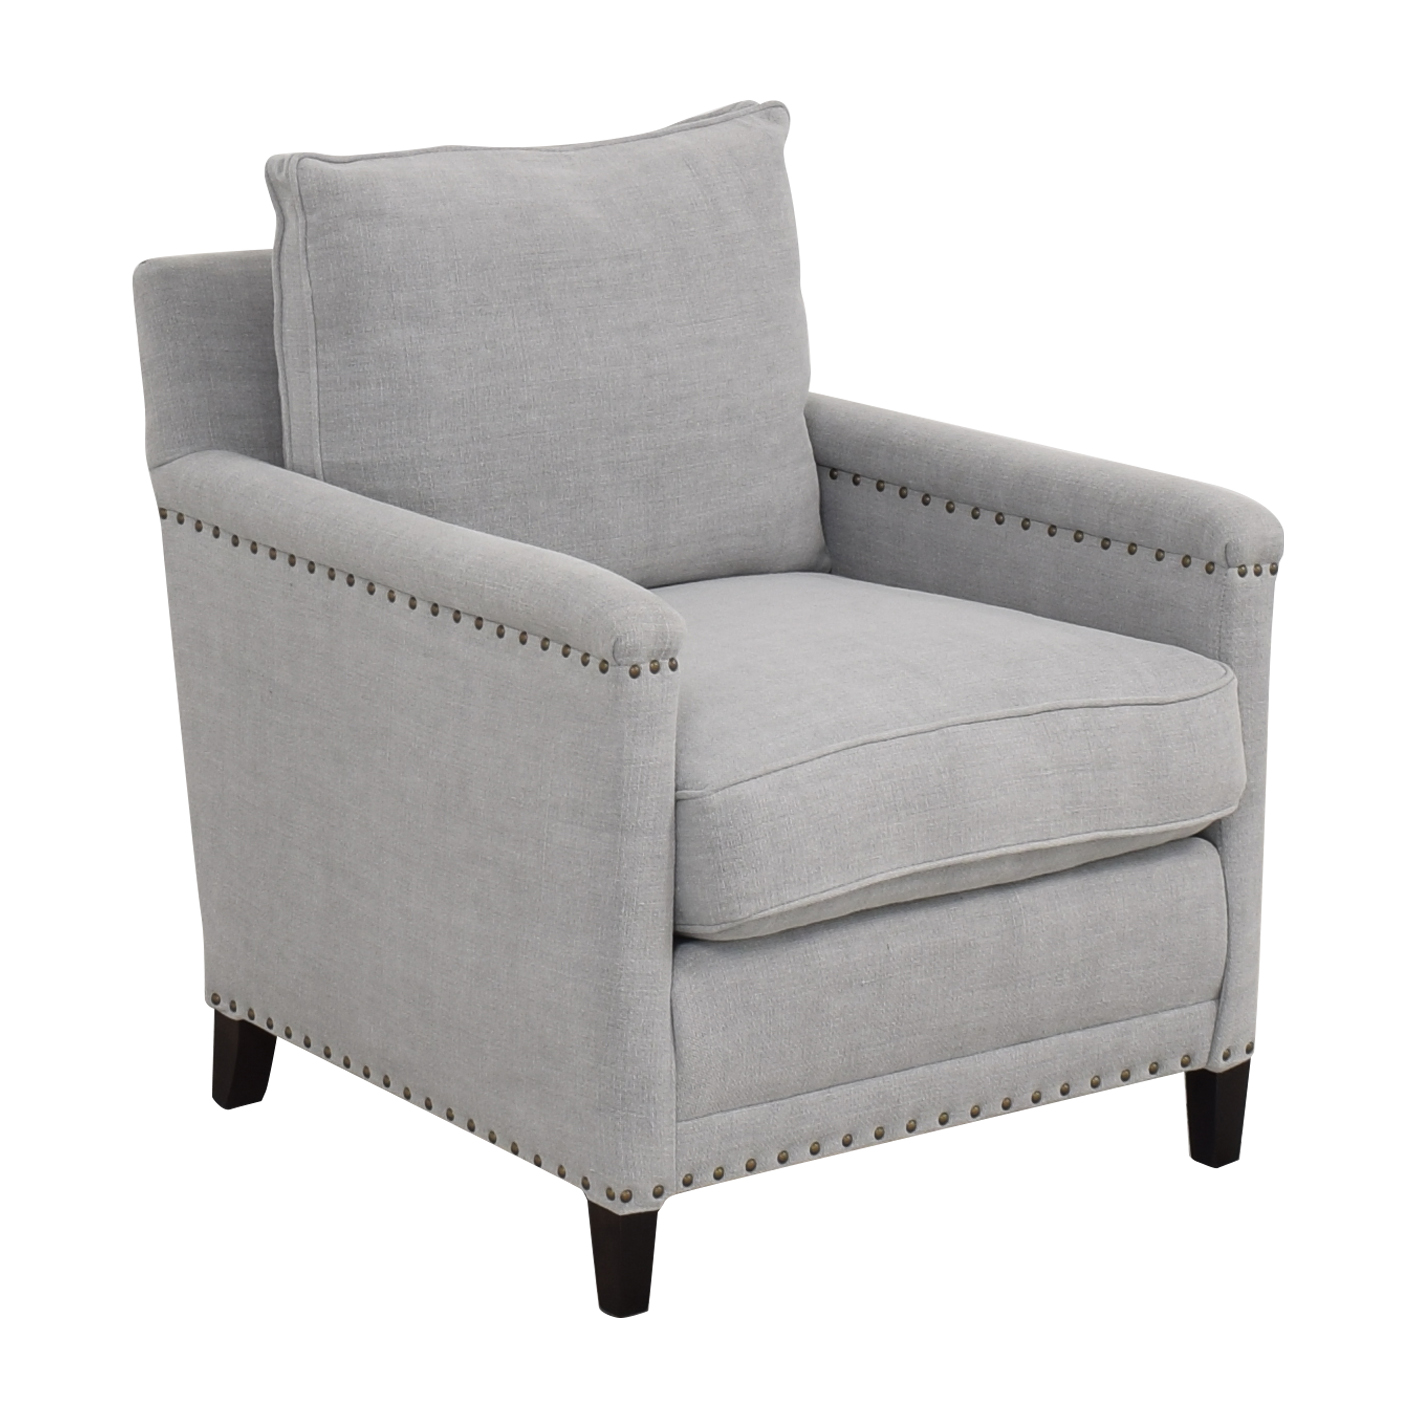 Williams Sonoma Williams Sononma Addison Chair nyc